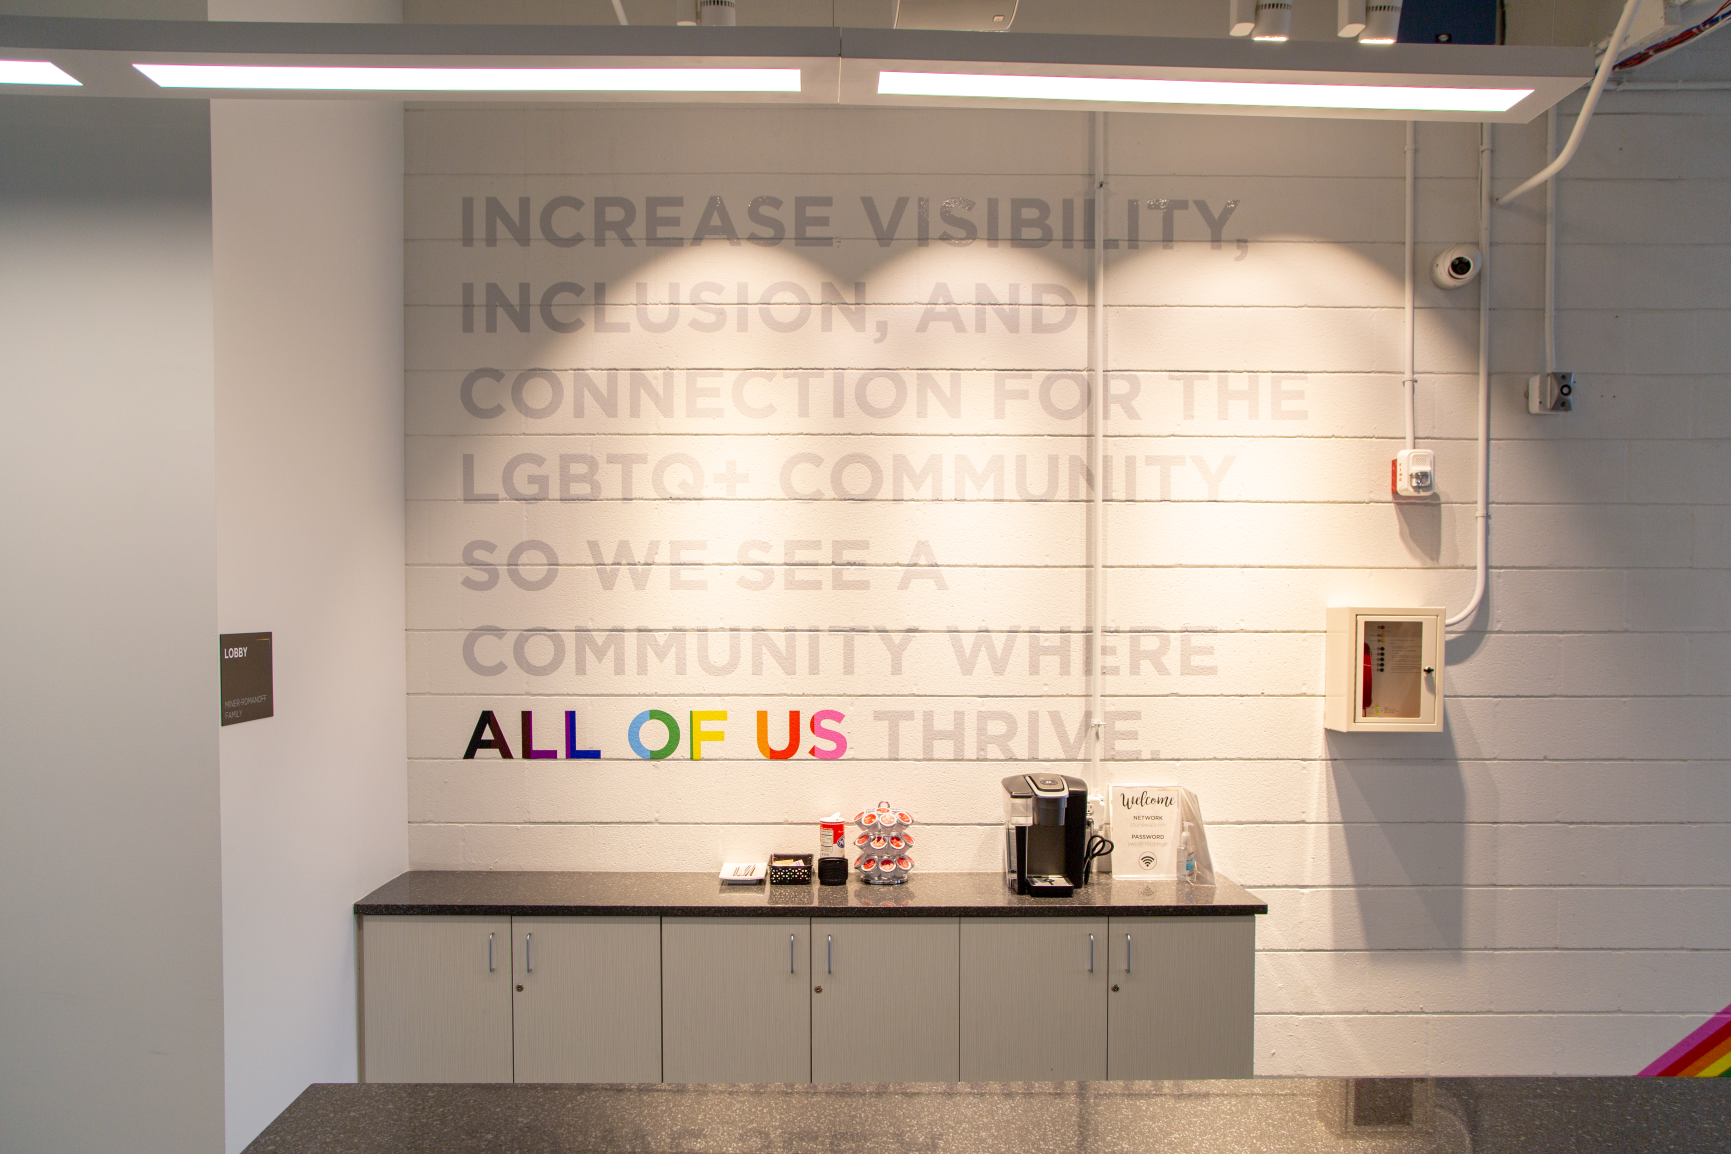 An inspirational message affirms Stonewall's welcoming and accepting mission at Stonewall Columbus Community Center by Continental Office Branding